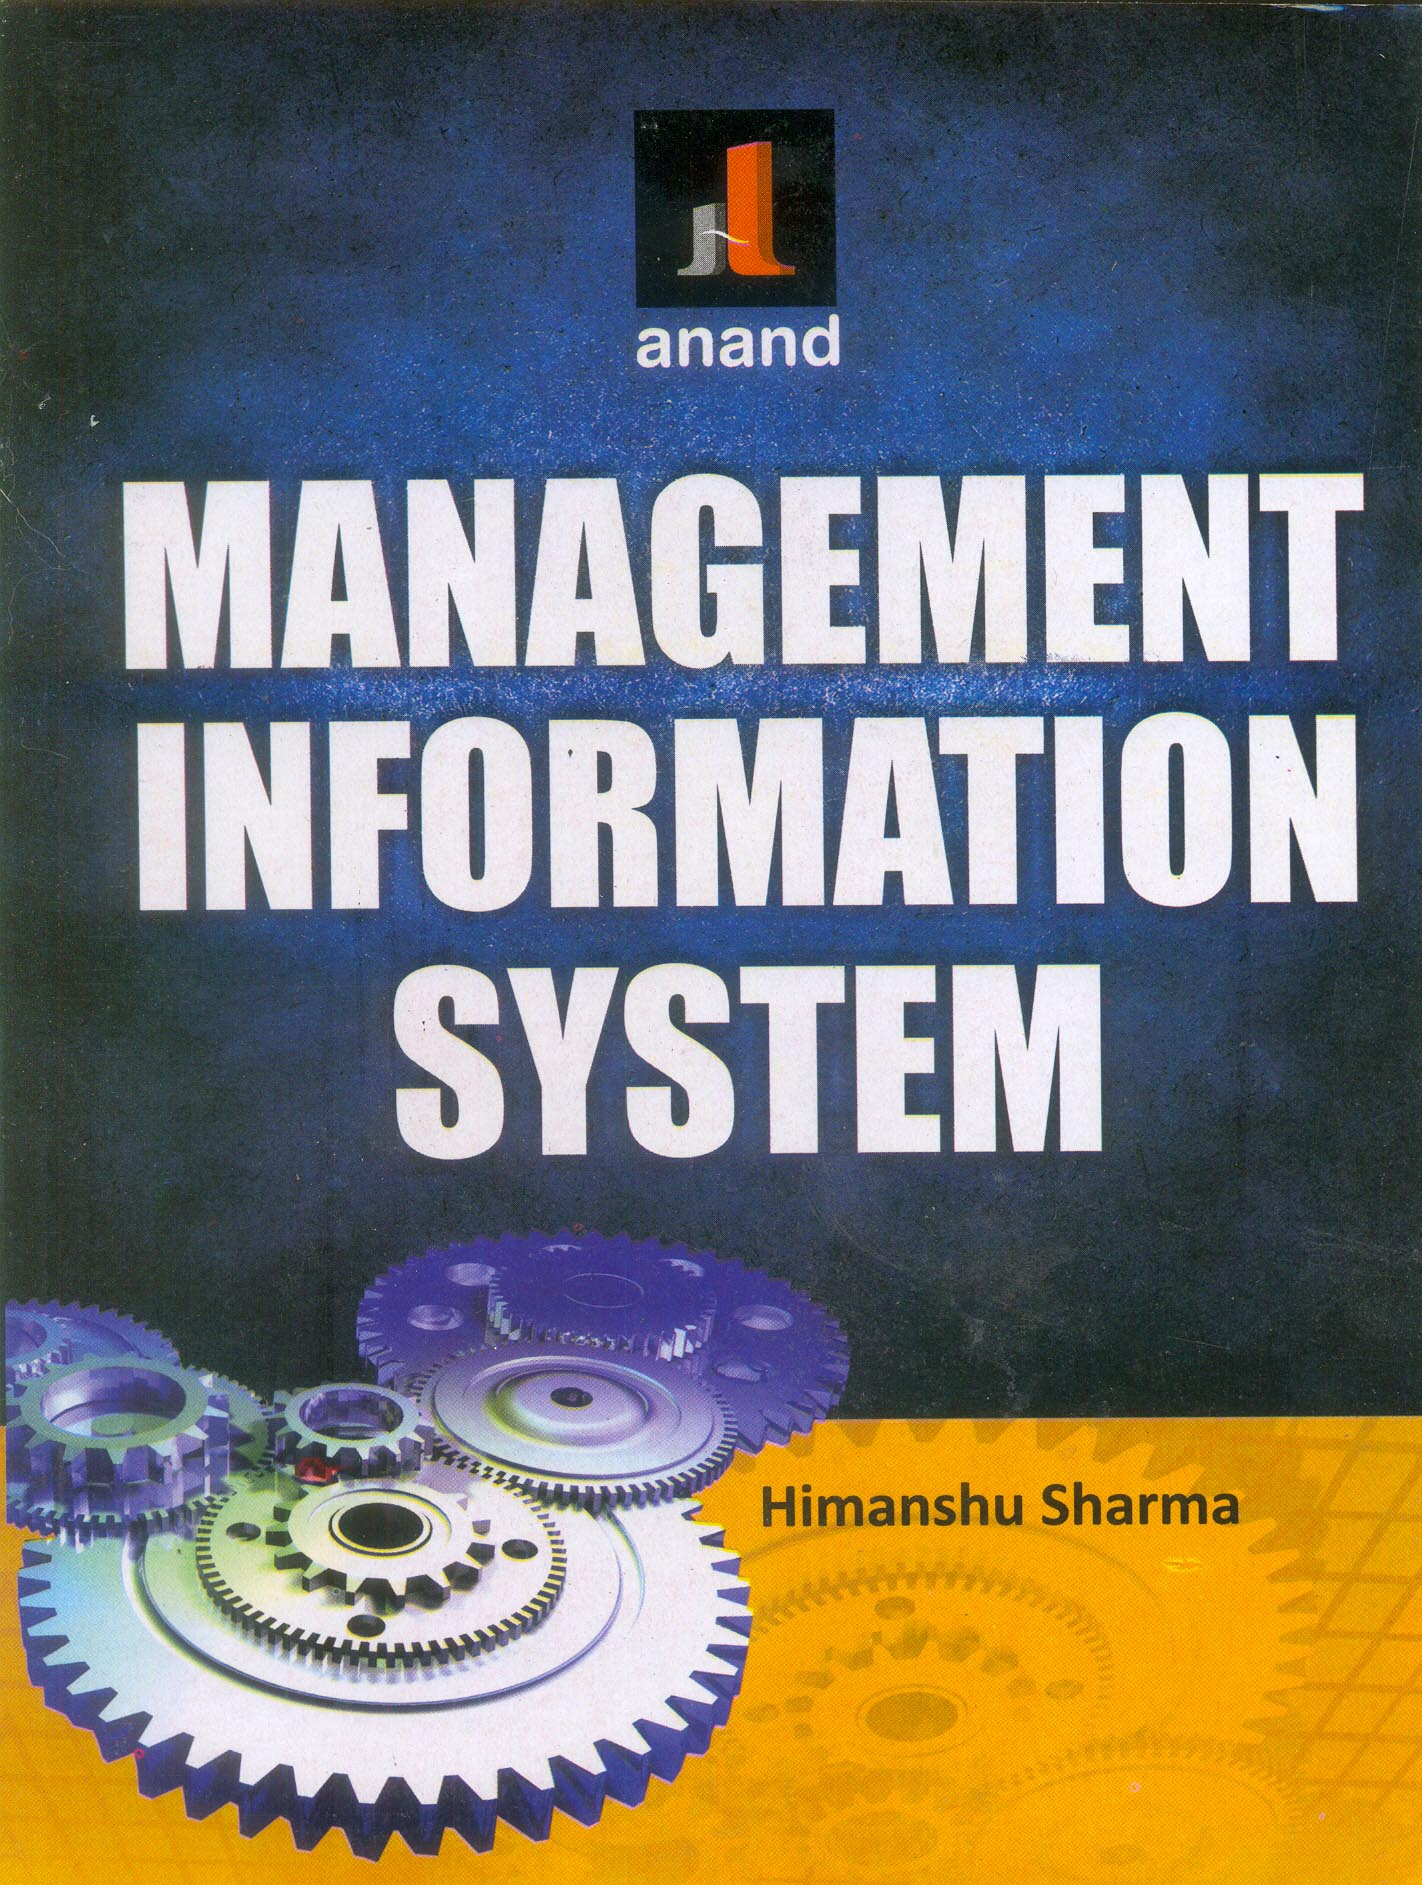 601 MANAGEMENT INFORMATION SYSTEM